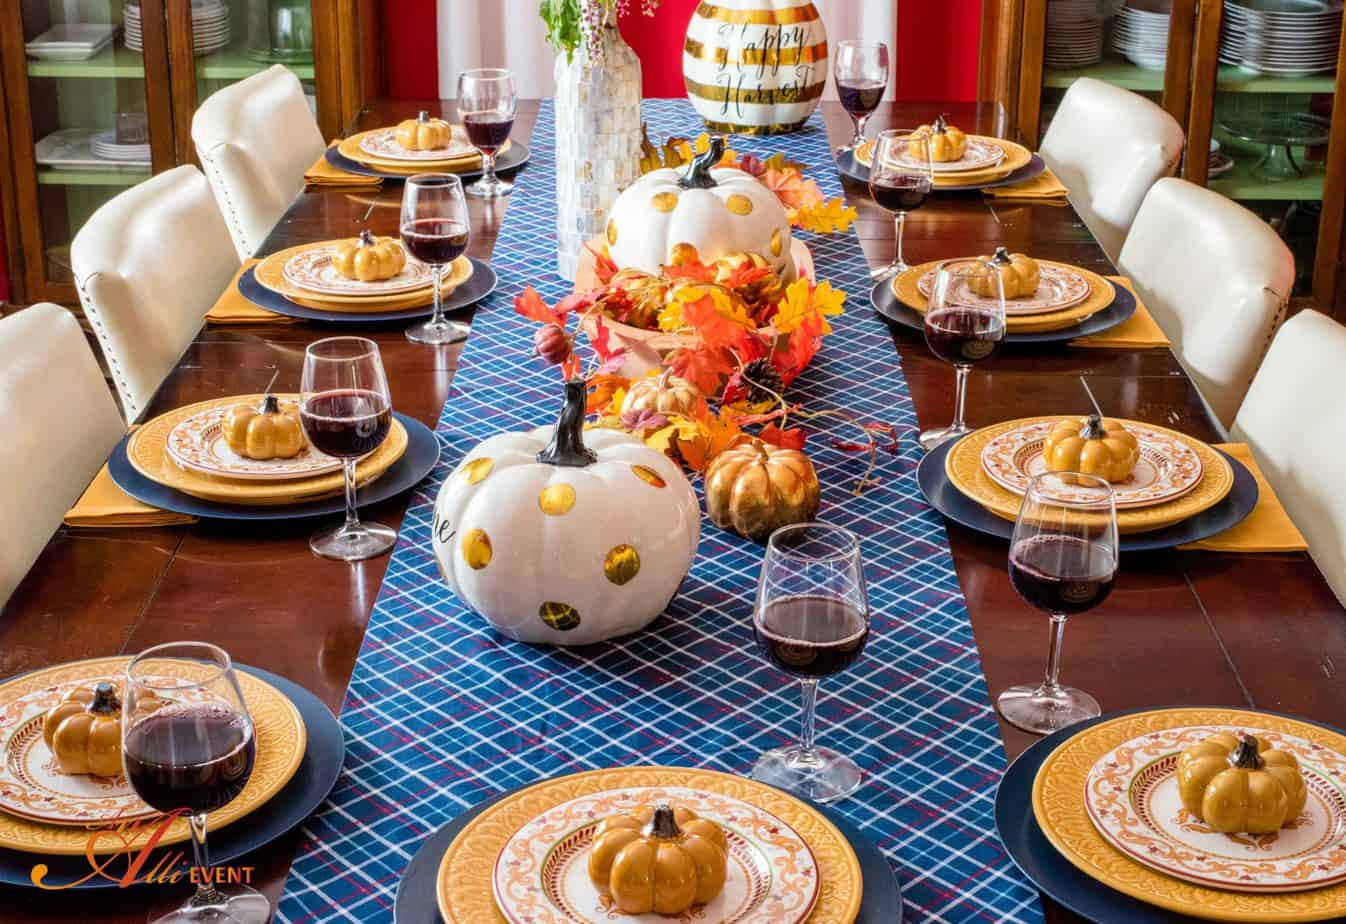 How to Set a Cozy Rustic Thanksgiving Table An Alli Event